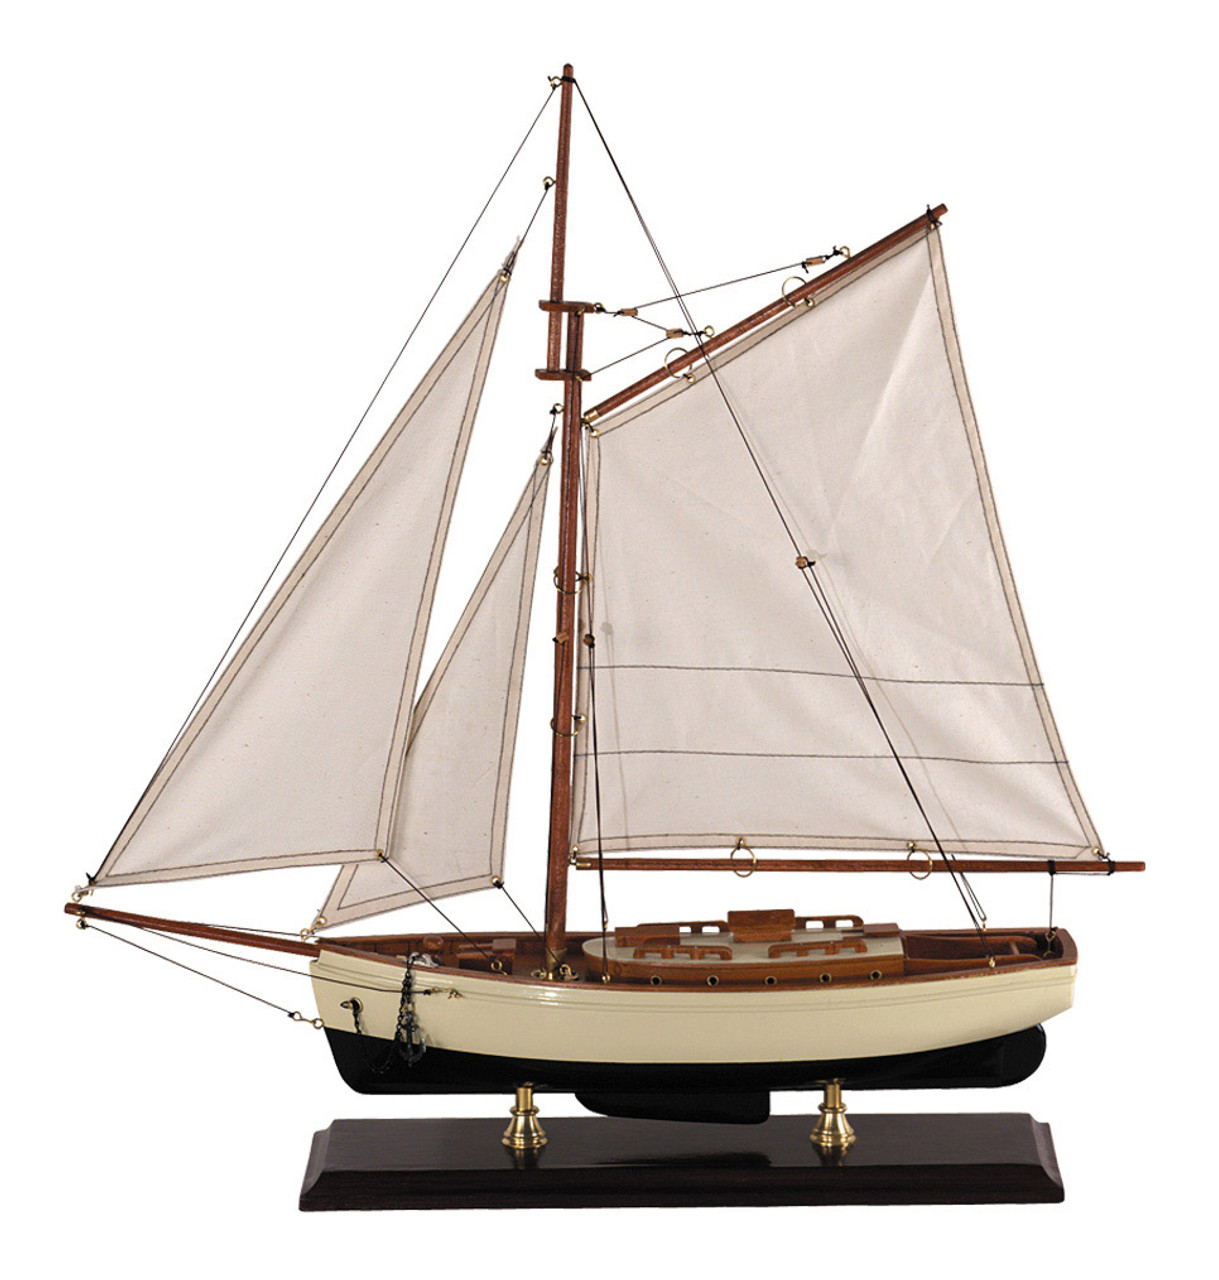 1930s Classic Yacht Small Wooden Model Sailboat